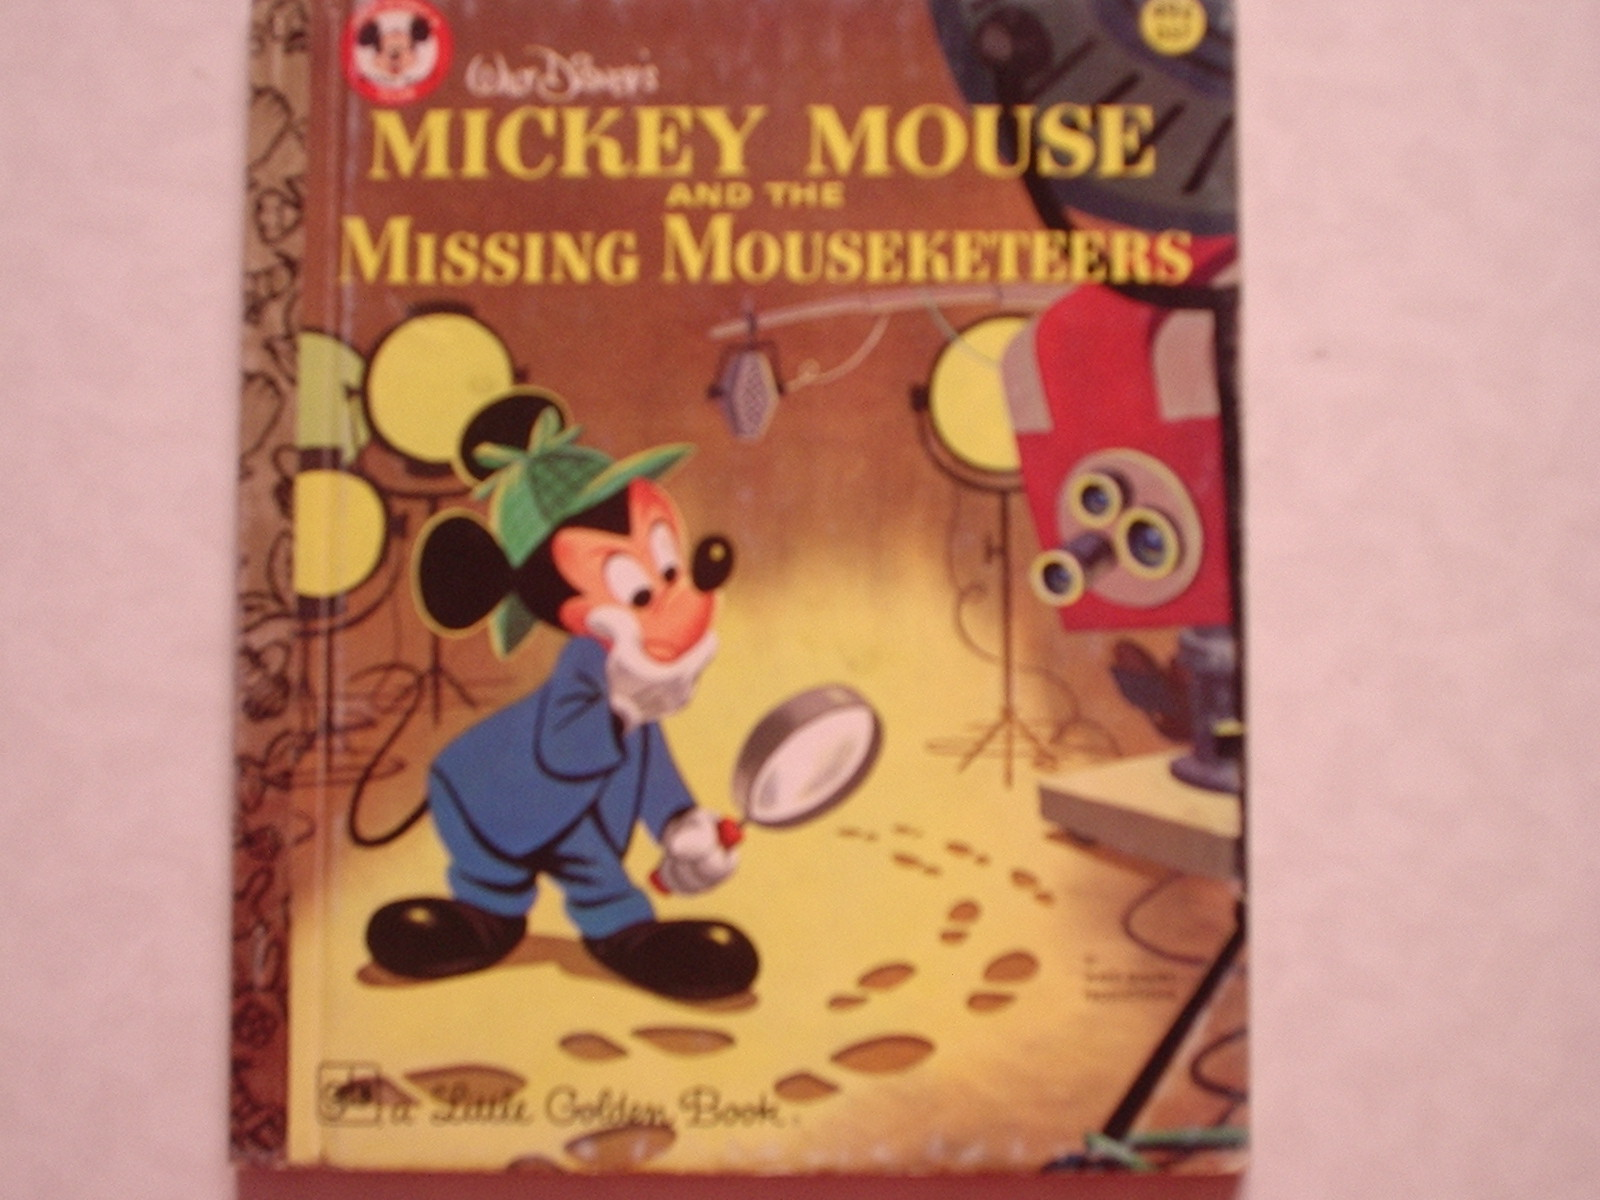 Mickey Mouse and the Missing Mouseketeers